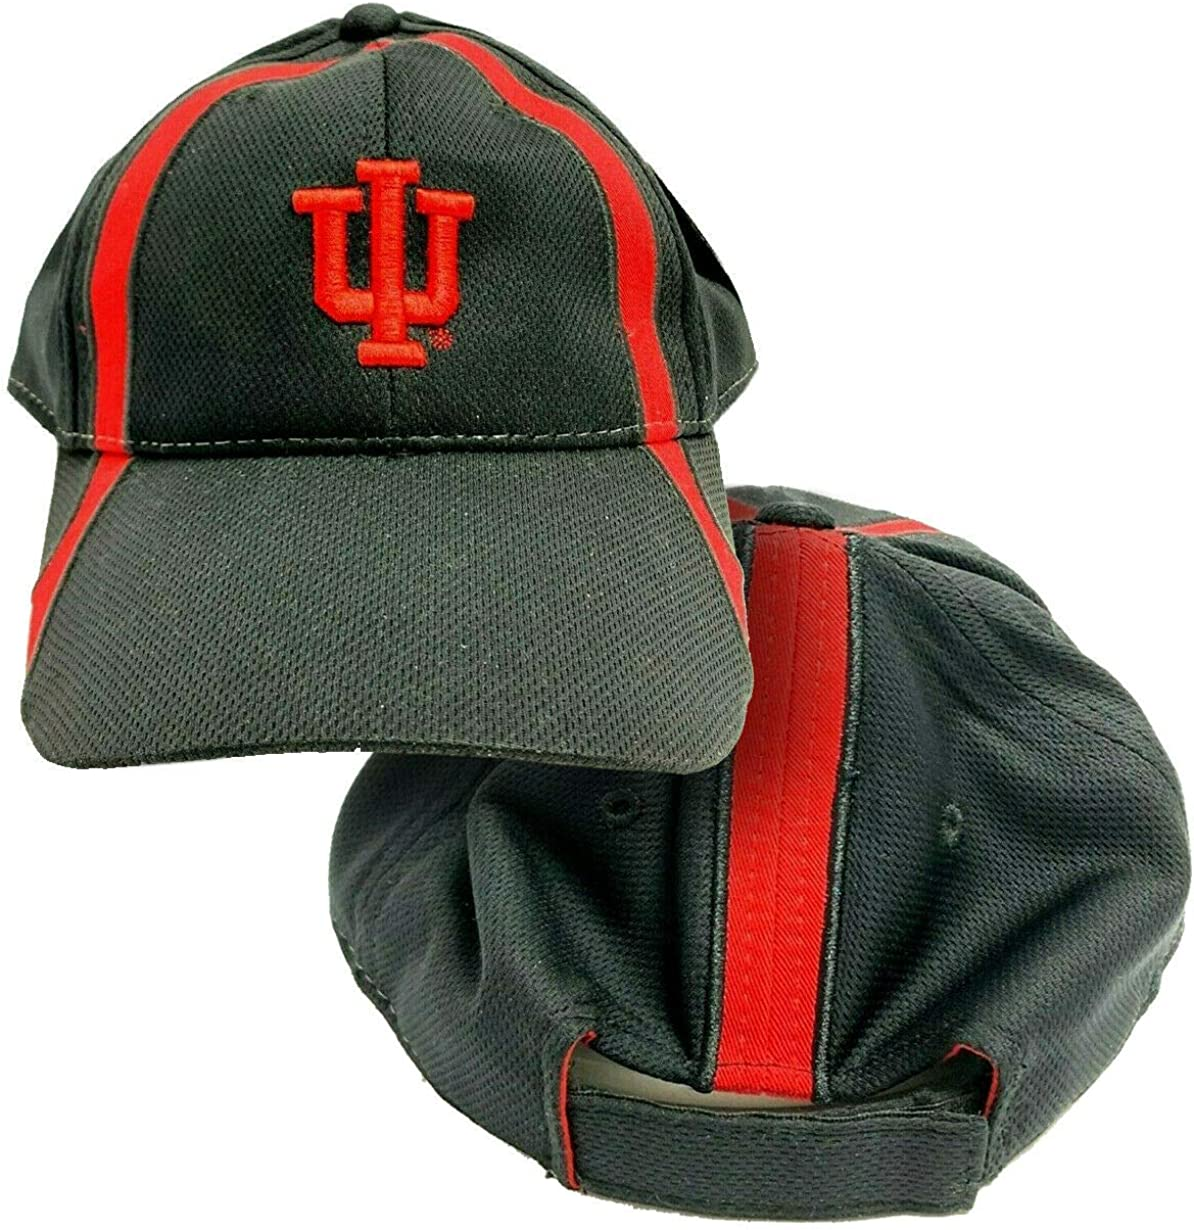 NCAA by Signatures Indiana University Hoosiers IU Athletic Embroidered Adjustable Strap Team Hat Black